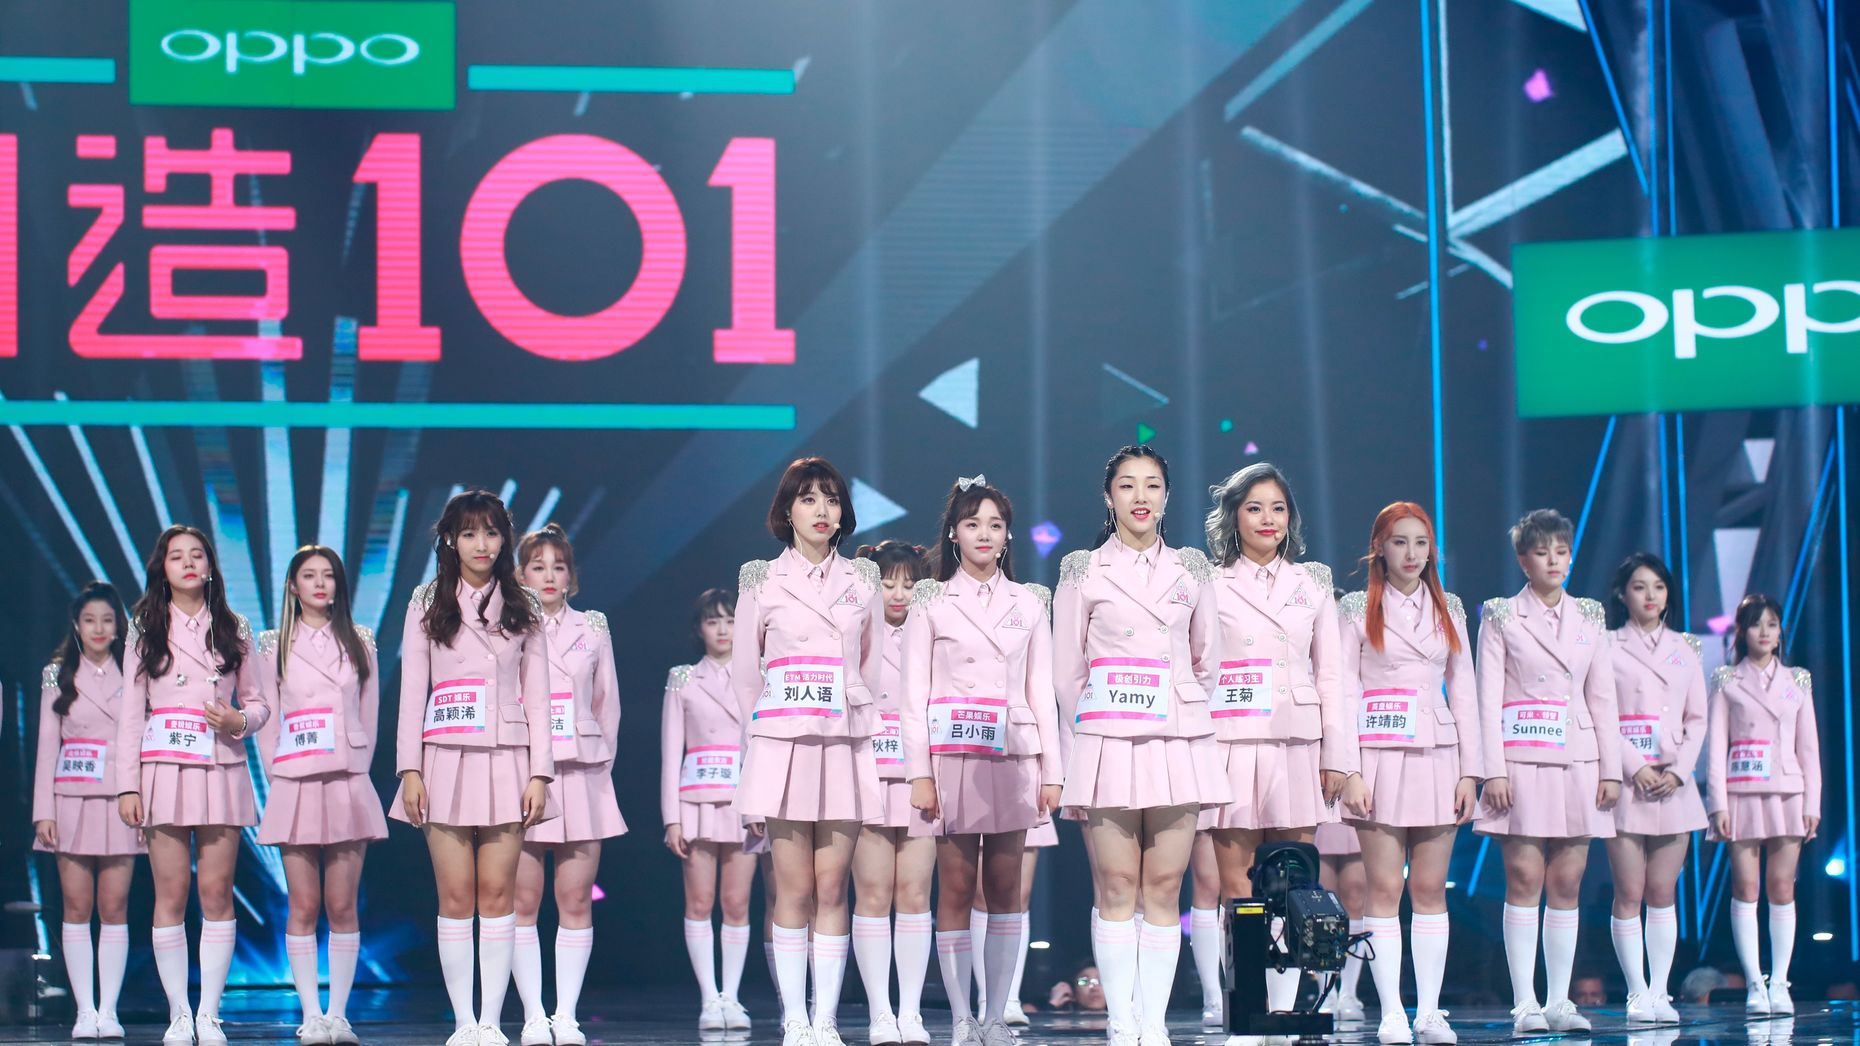 Finalists in the online video show 'Produce 101' on an episode in June. Photo by AP